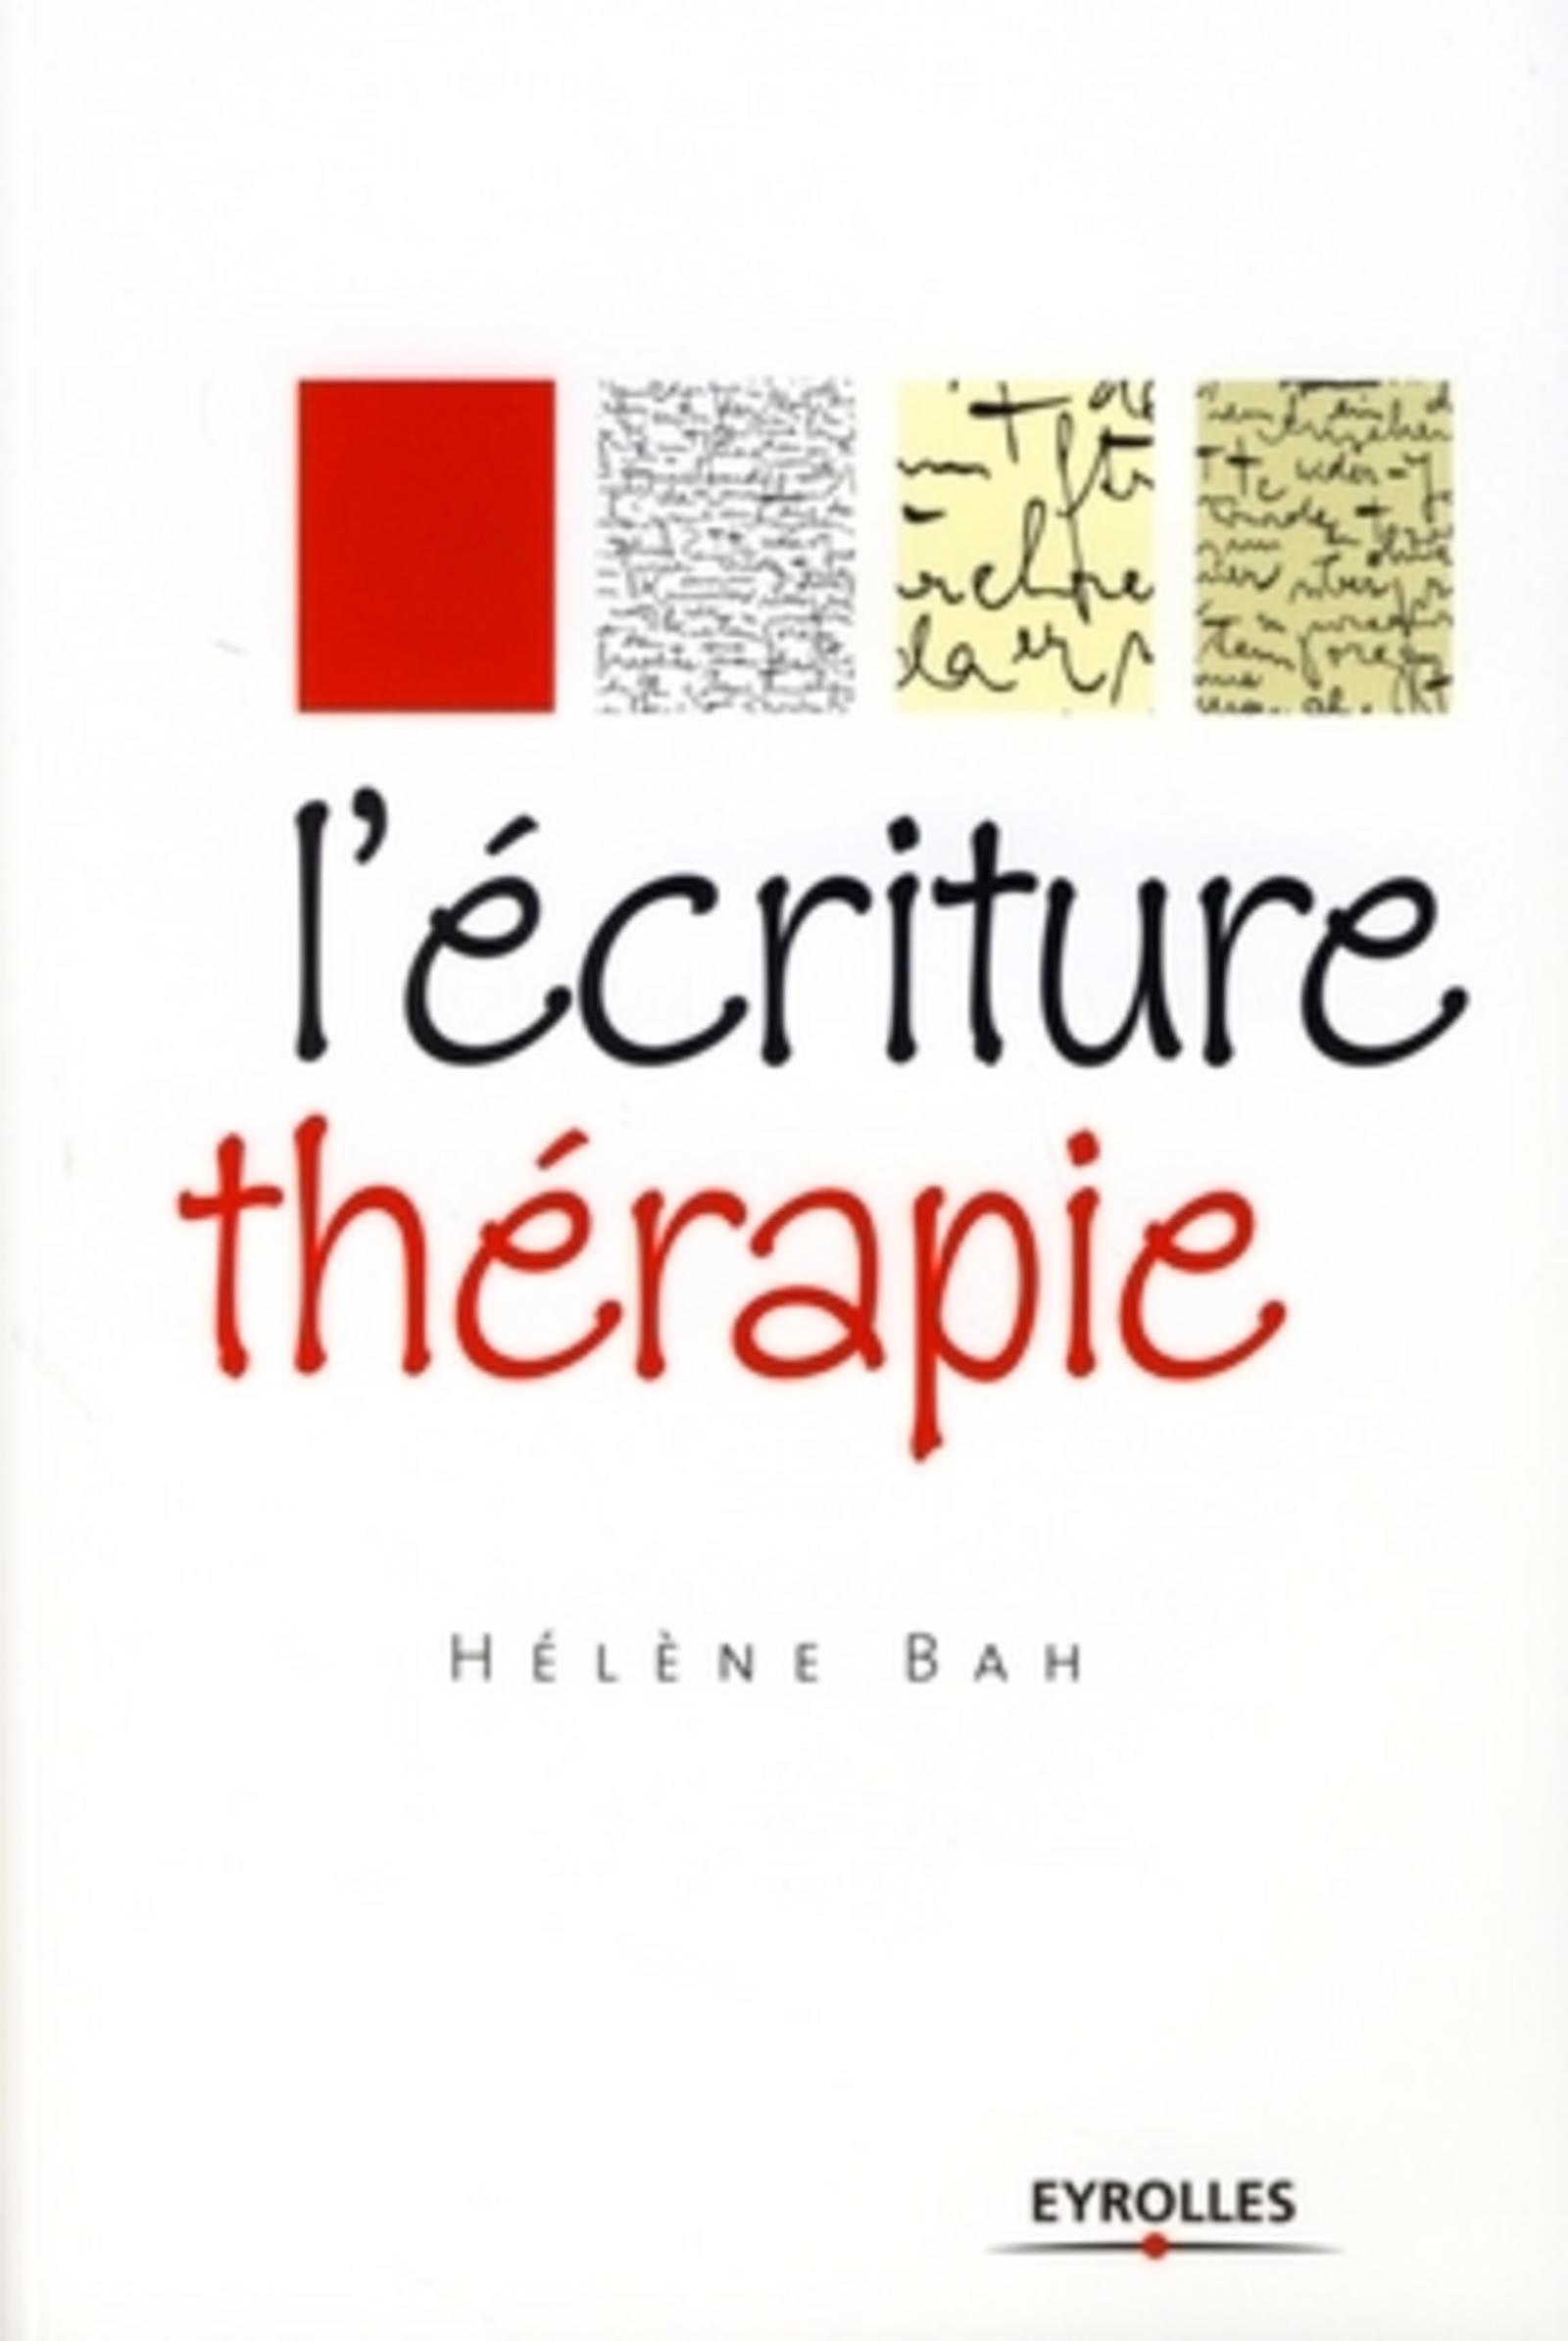 L'ECRITURE THERAPIE